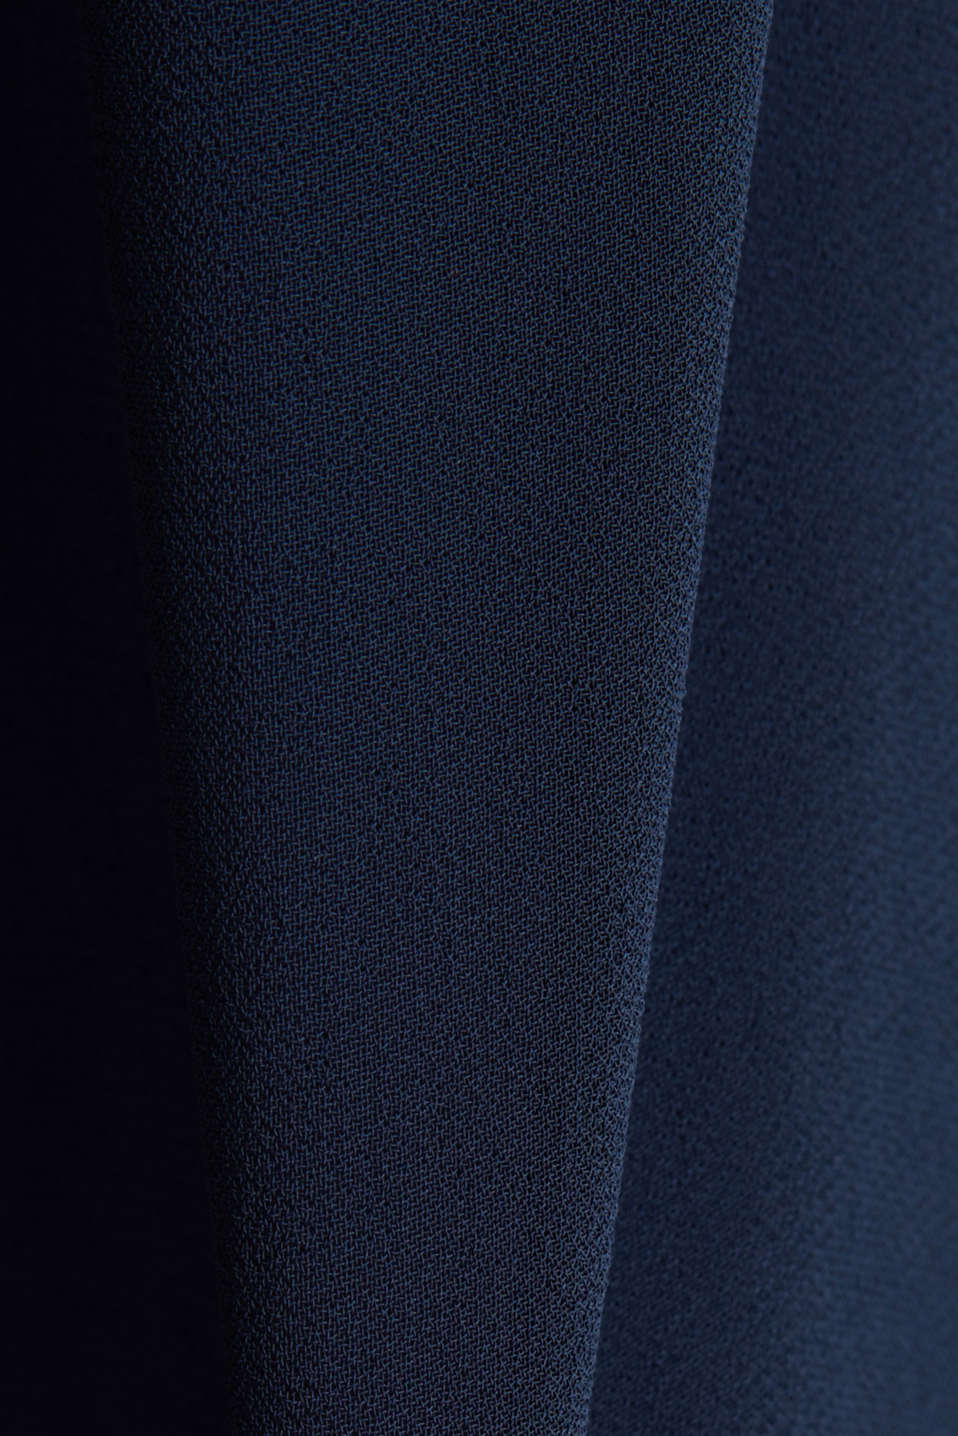 Midi dress in crêpe chiffon, NAVY, detail image number 4